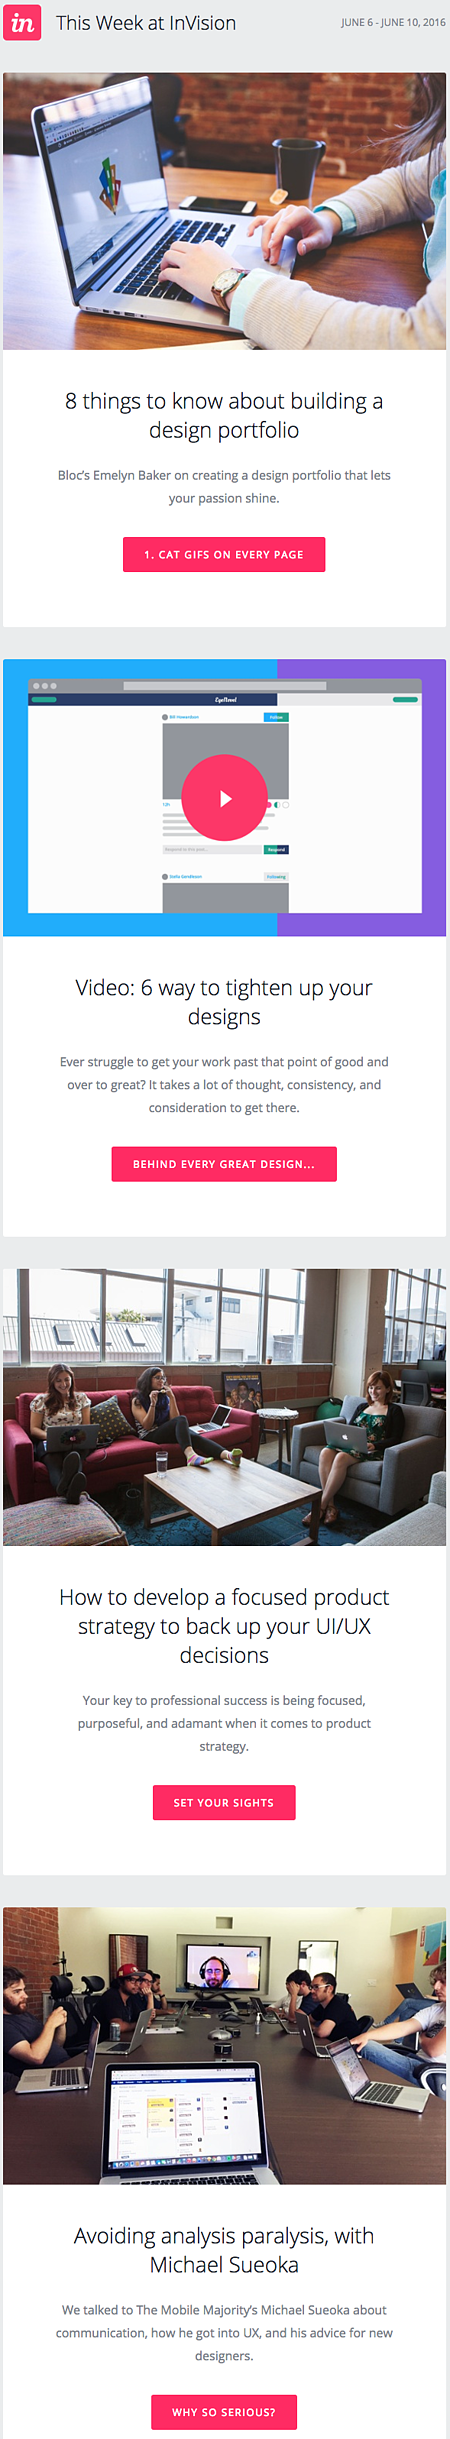 Email Newsletter Example: InVision